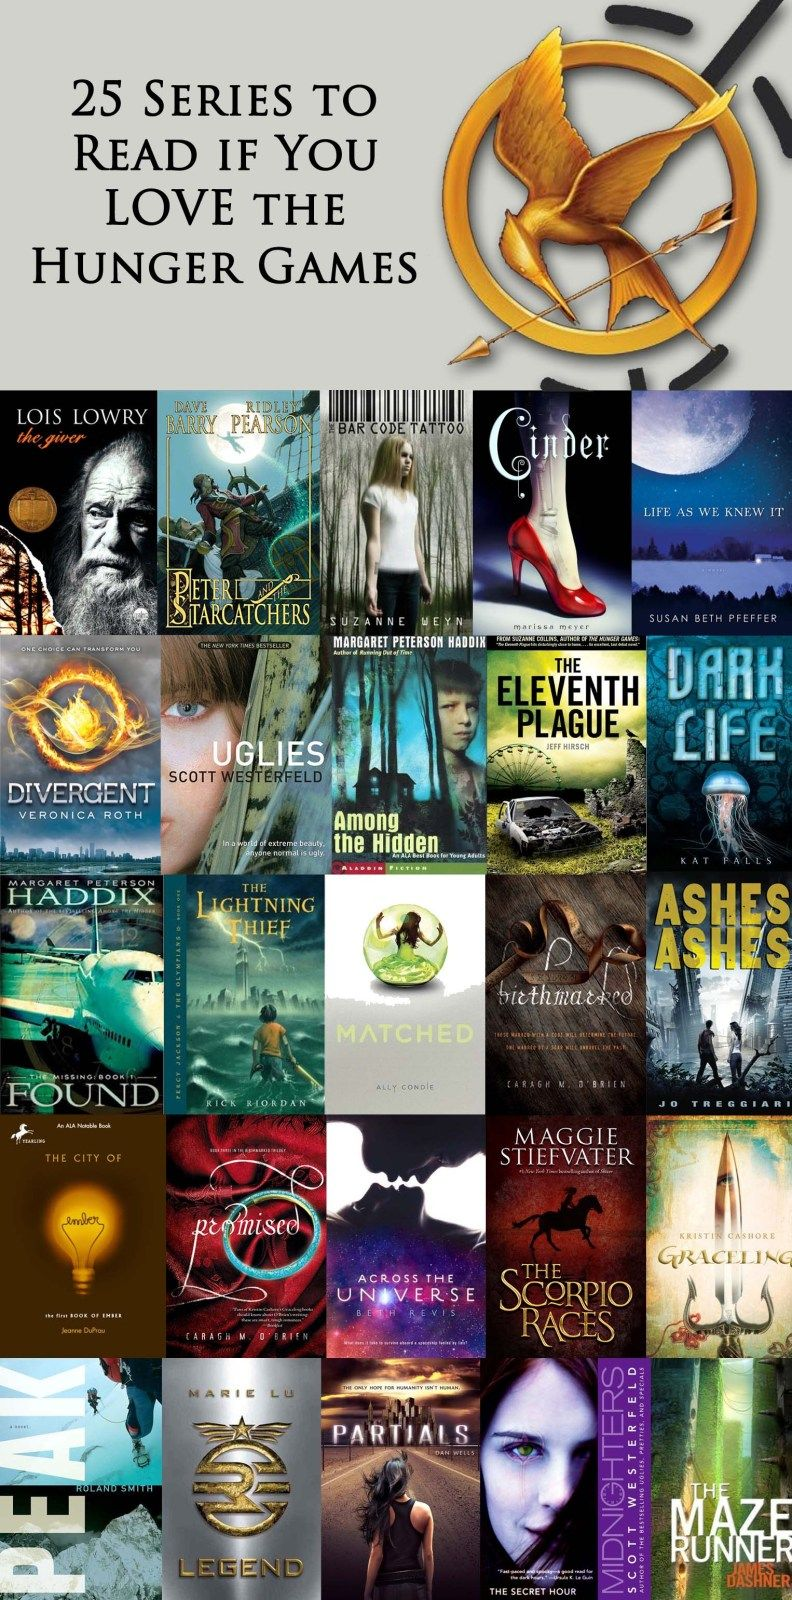 25 series to read if you love the hunger games books